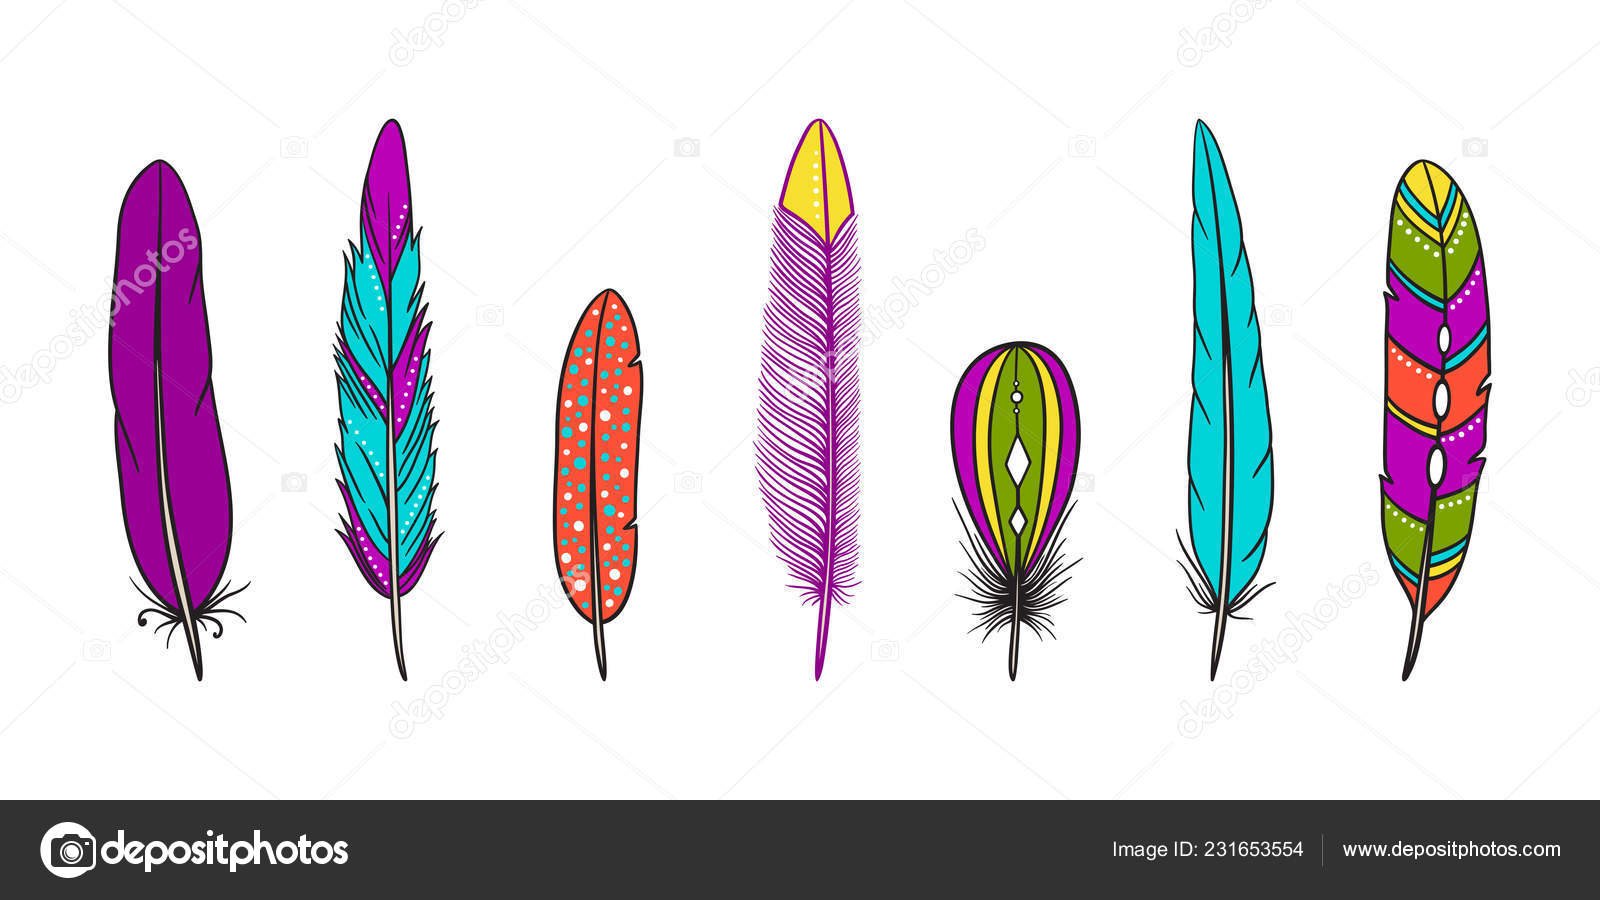 Clipart: feathers.